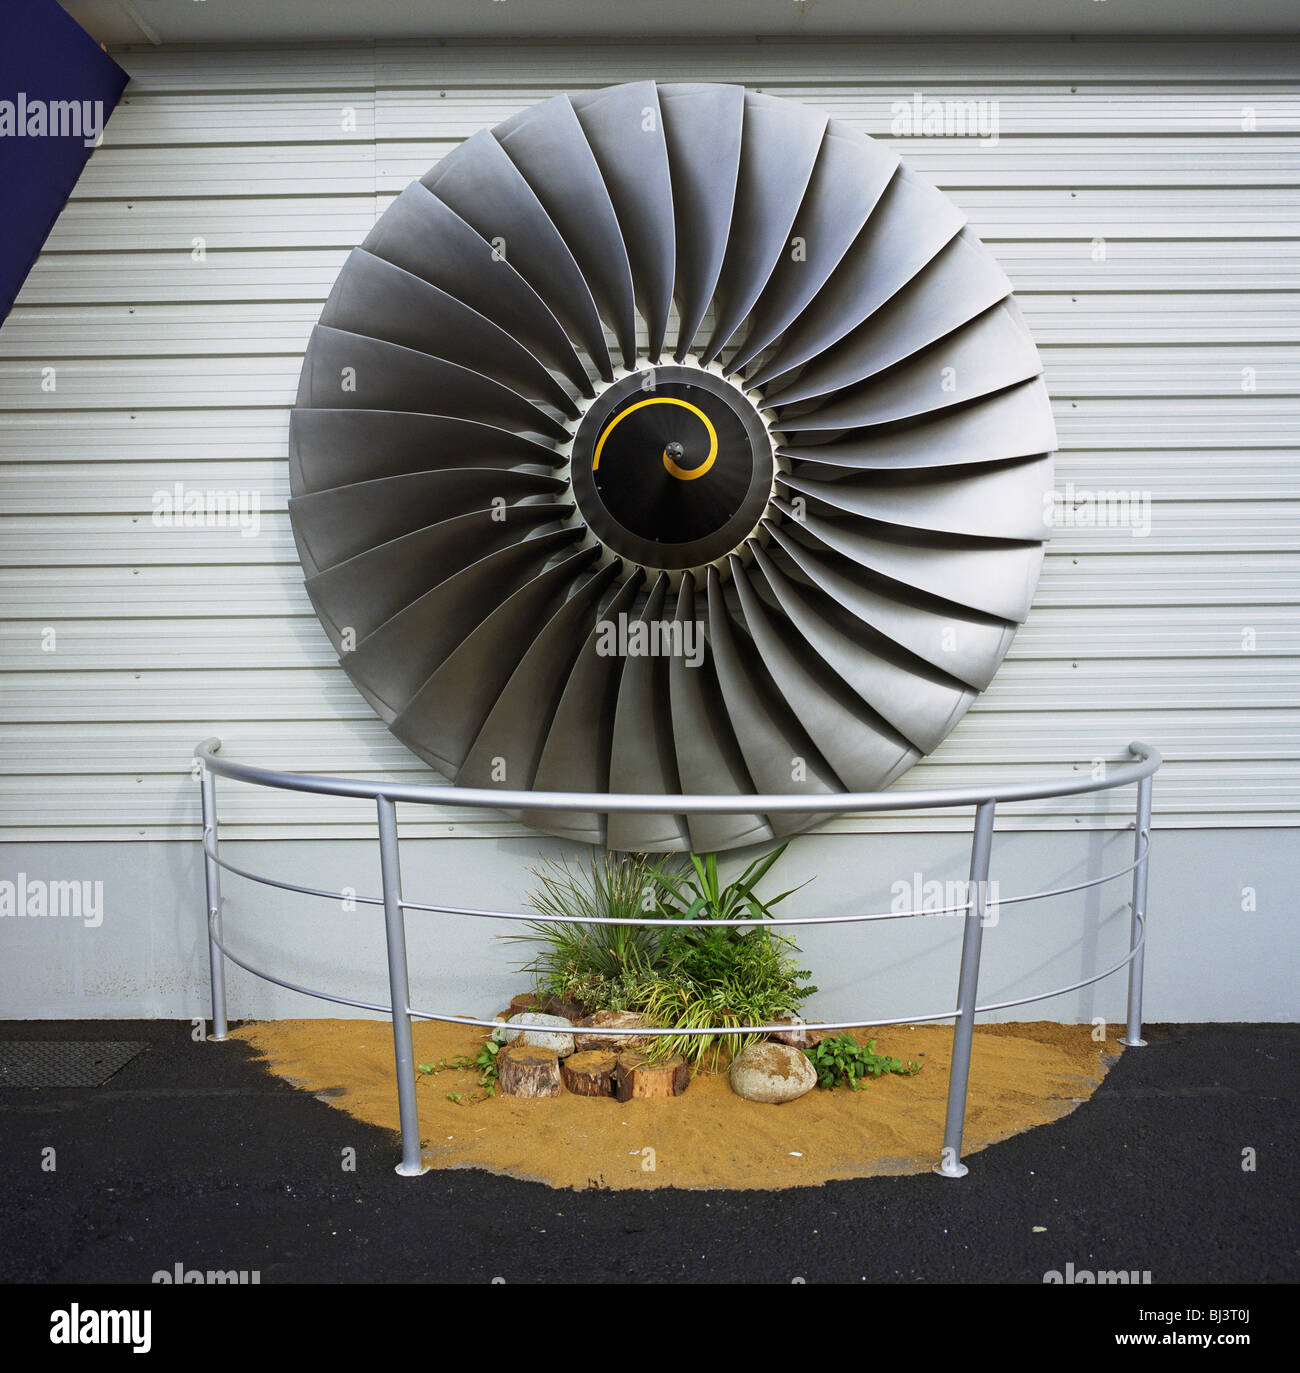 A Rolls-Royce turbofan has been fixed to the exterior of the company's sales stand at the Farnborough Air Show in - Stock Image